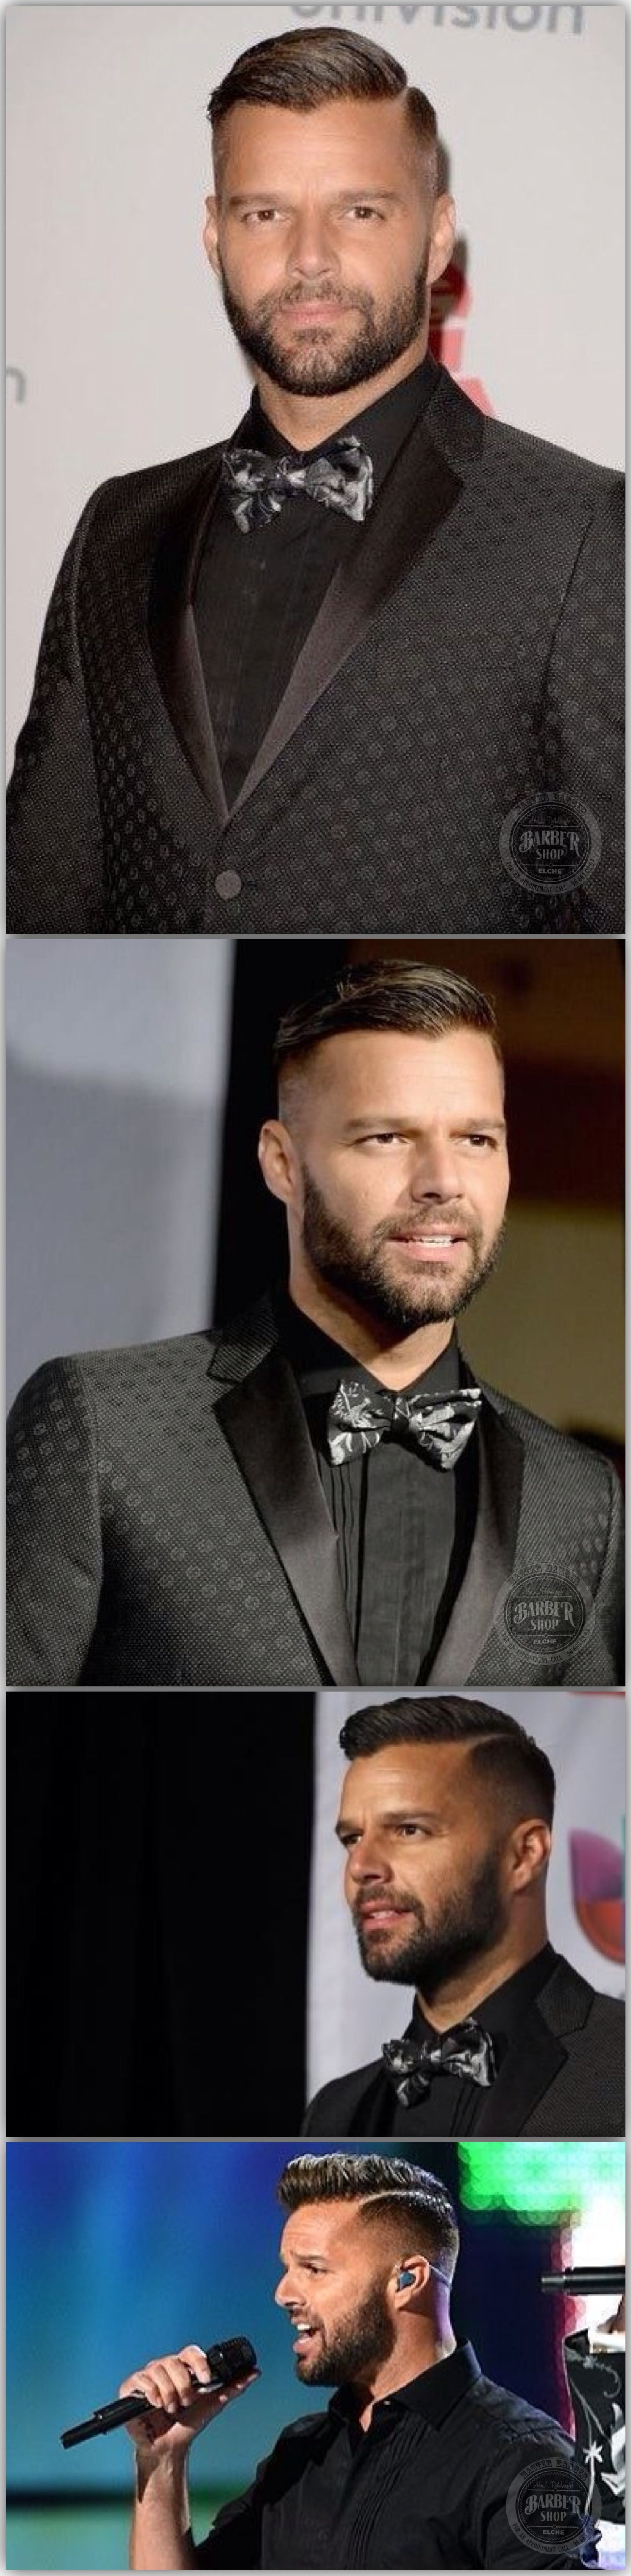 Ricky martinus awesome hair cabello pinterest awesome hair